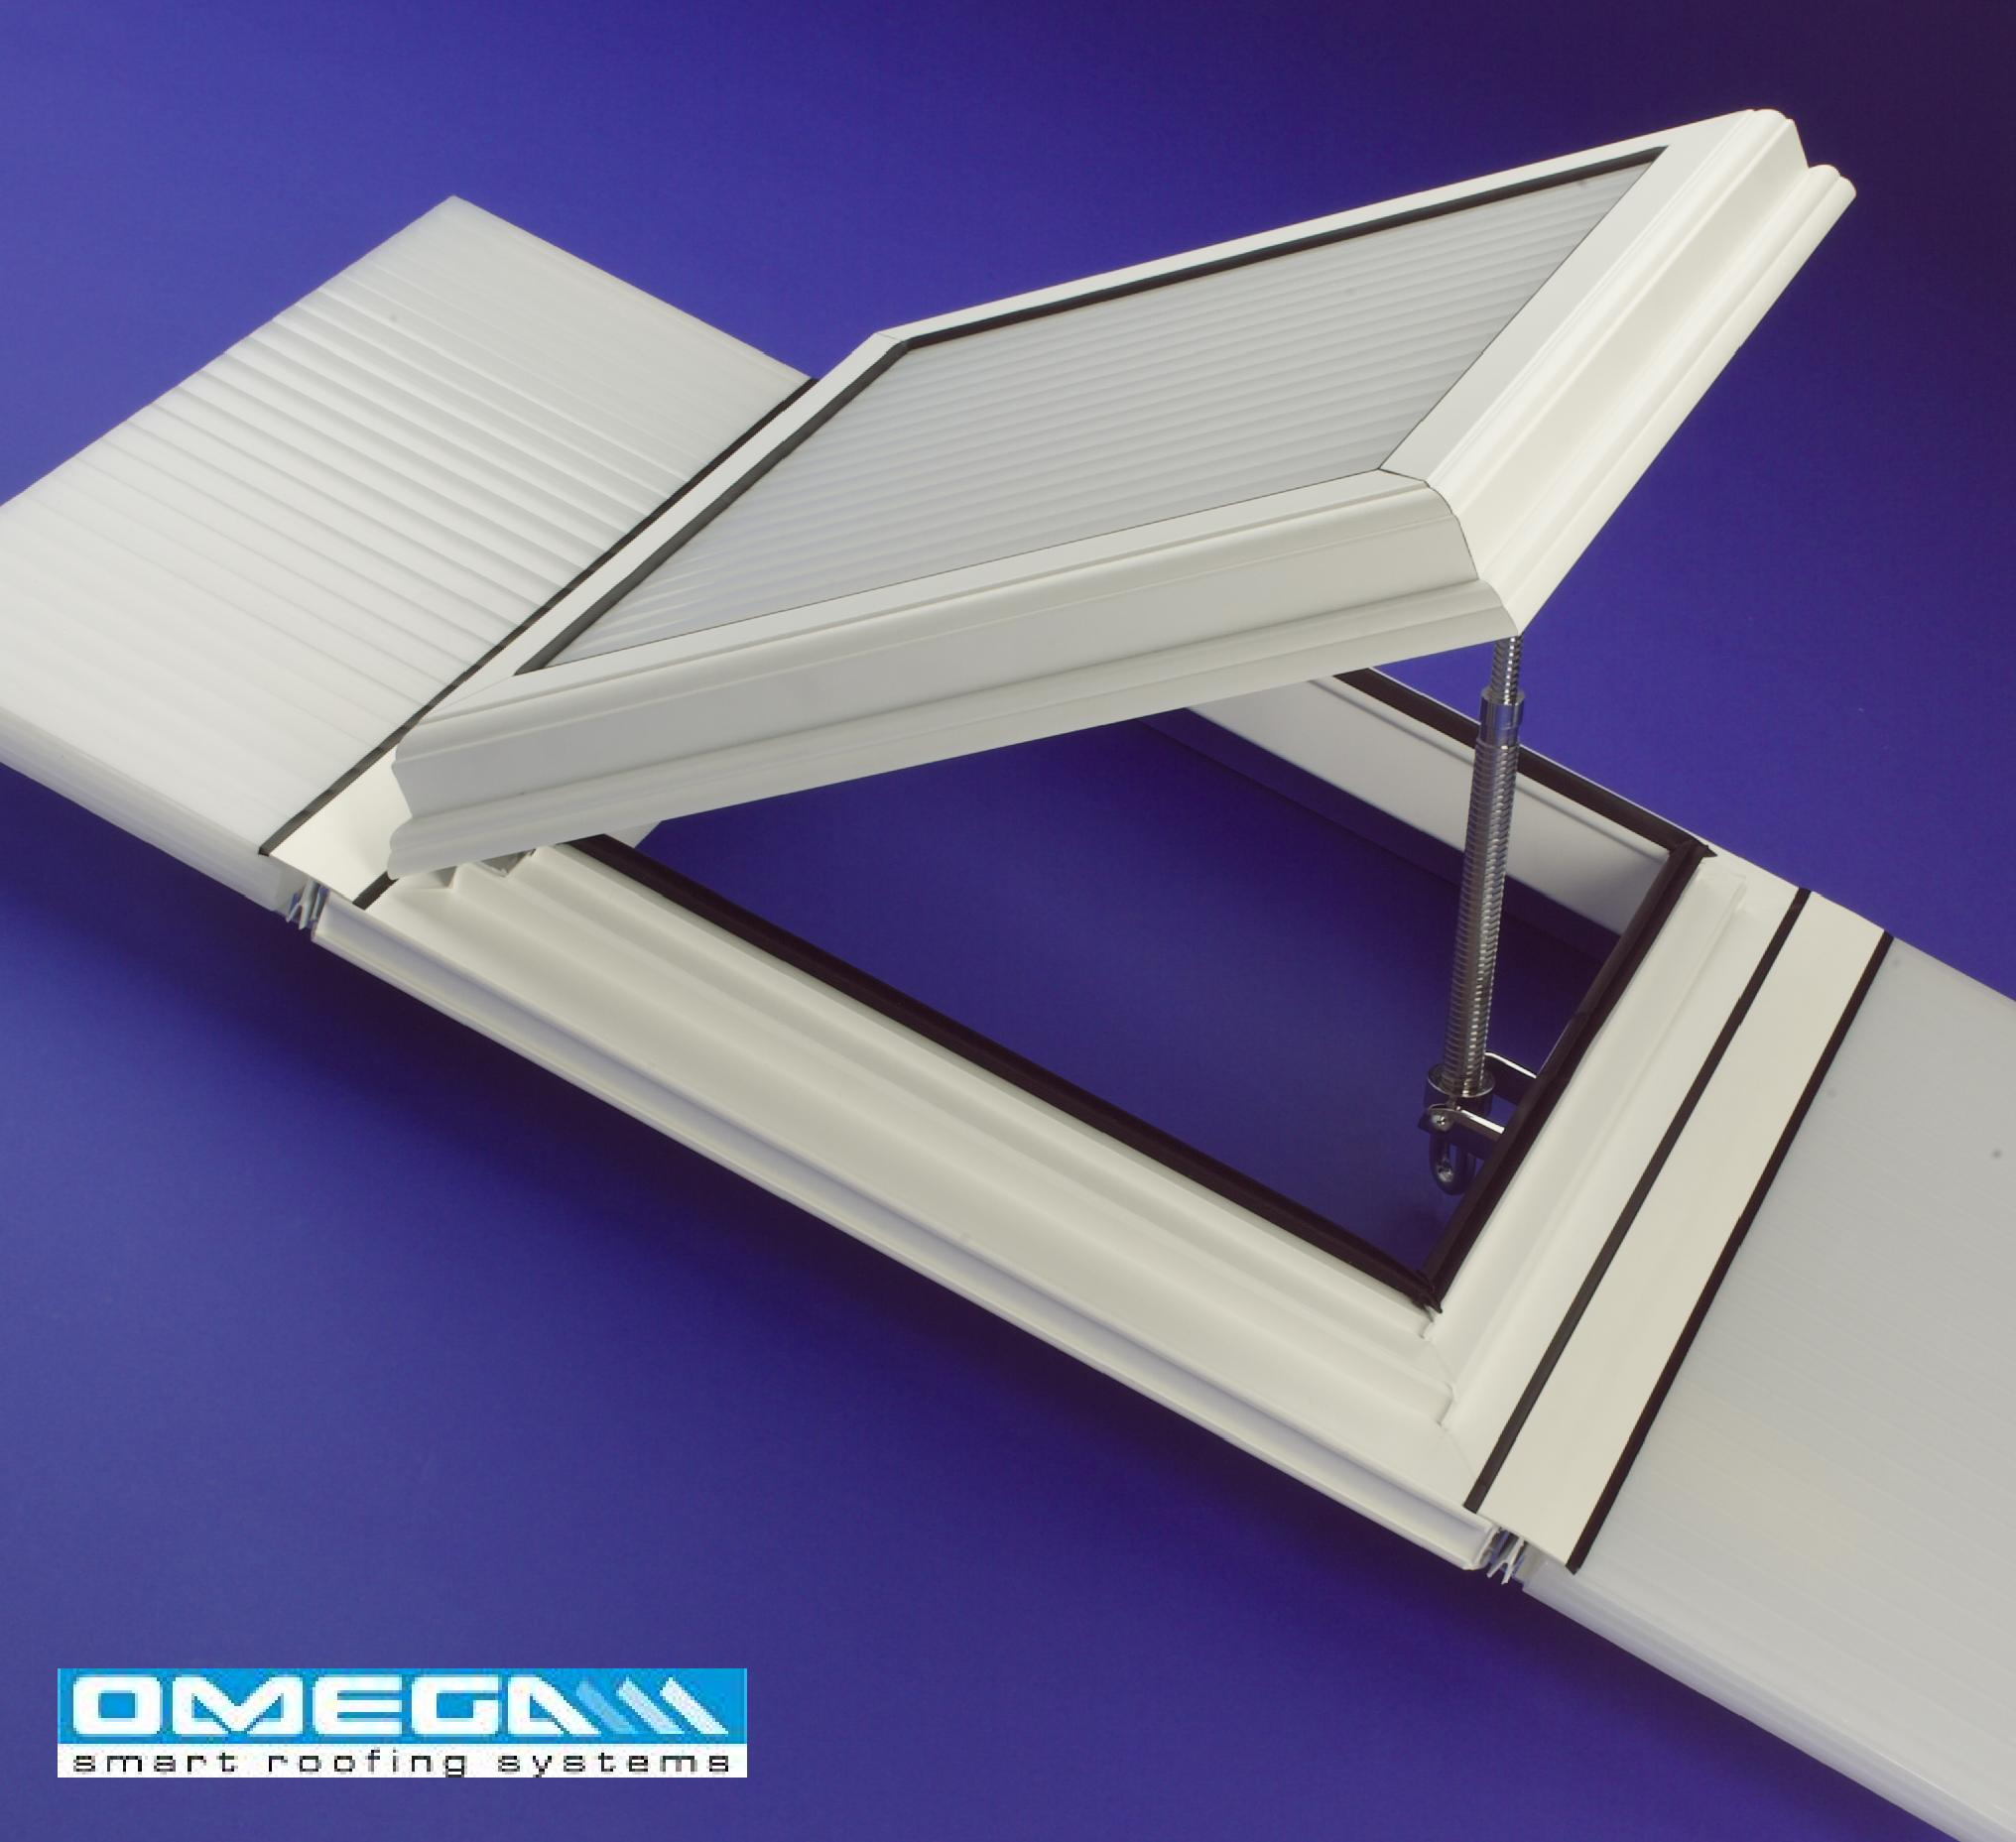 Aluminium/uPVC Conservatory Roof Vent (Bar-to-Bar) for 35mm thick polycarbonate